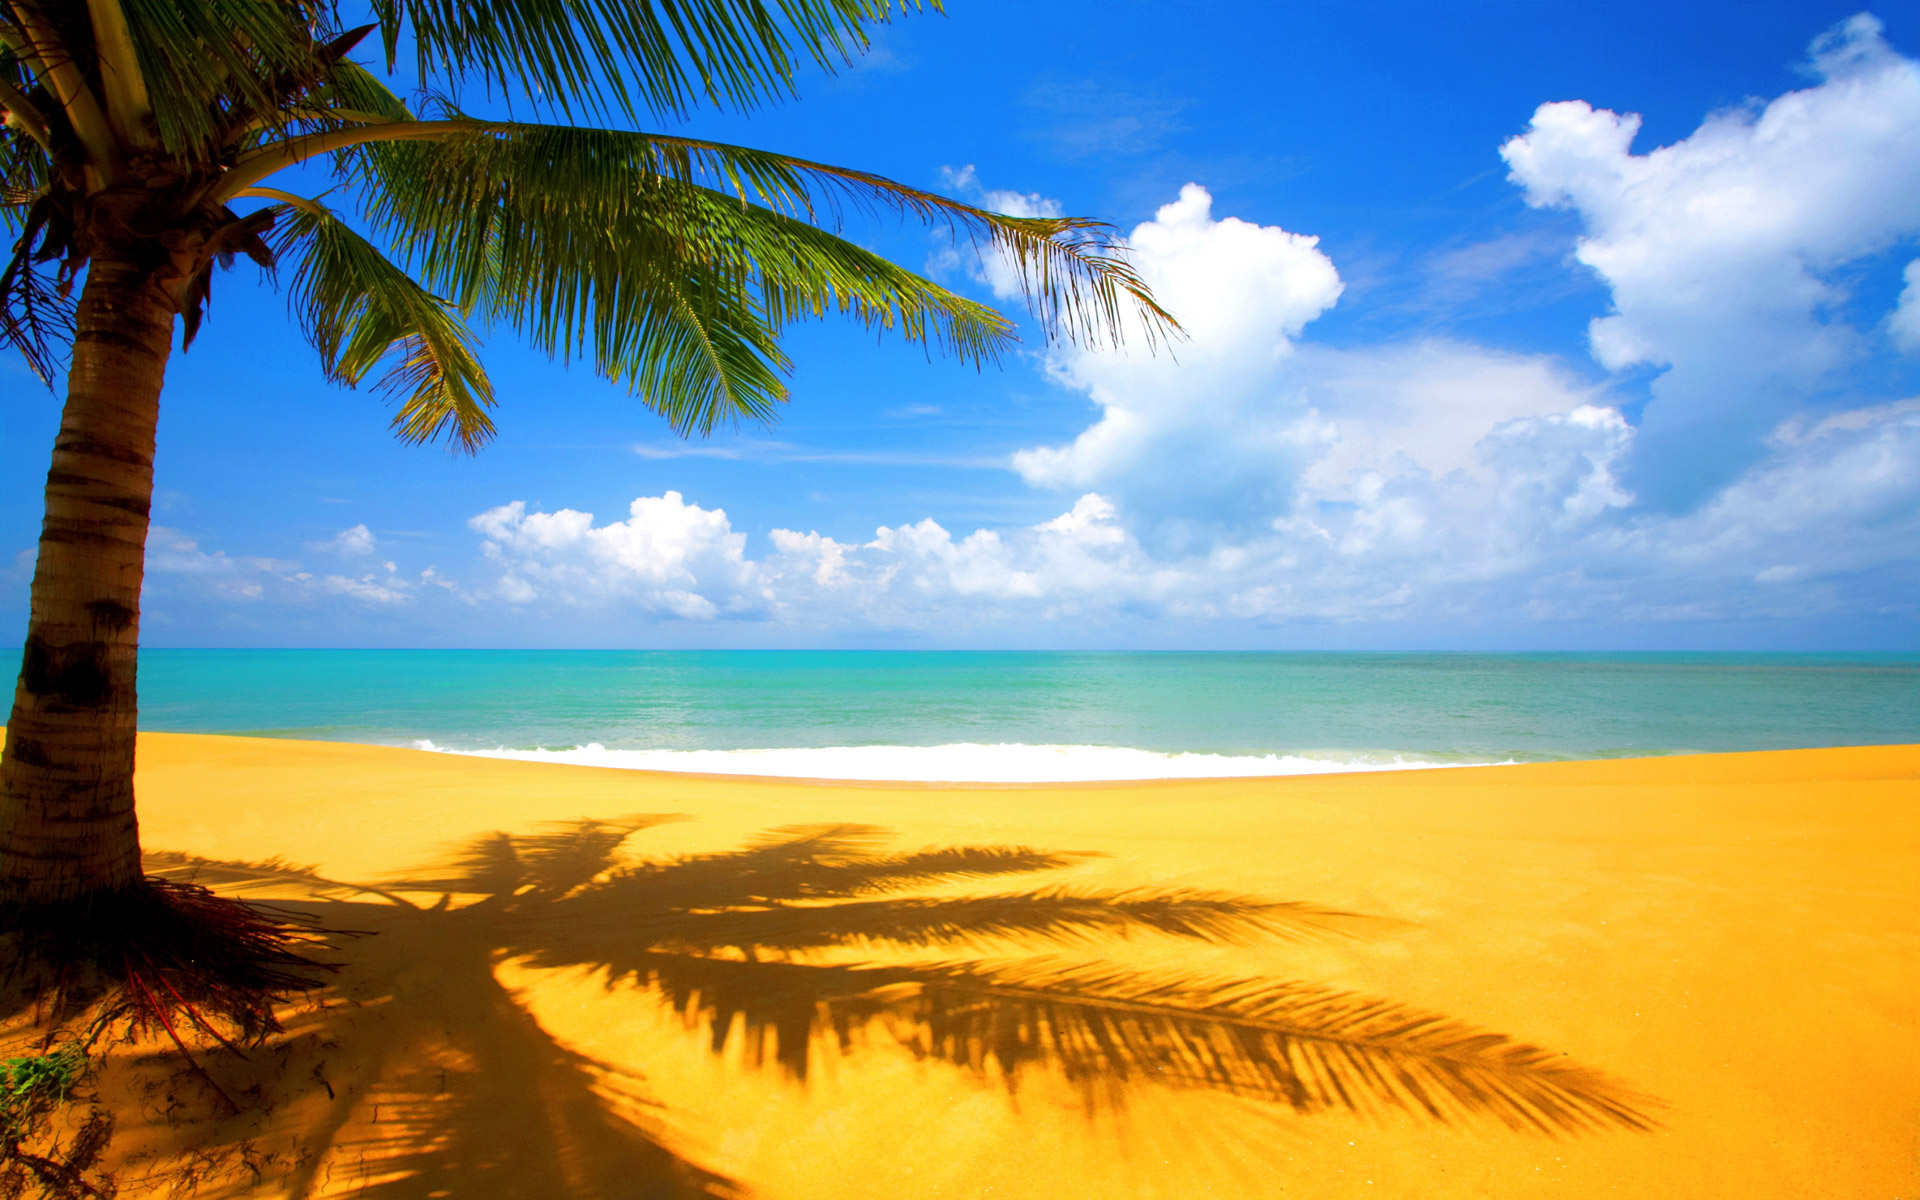 Beach Desktop Wallpapers FREE on Latorocom 1920x1200